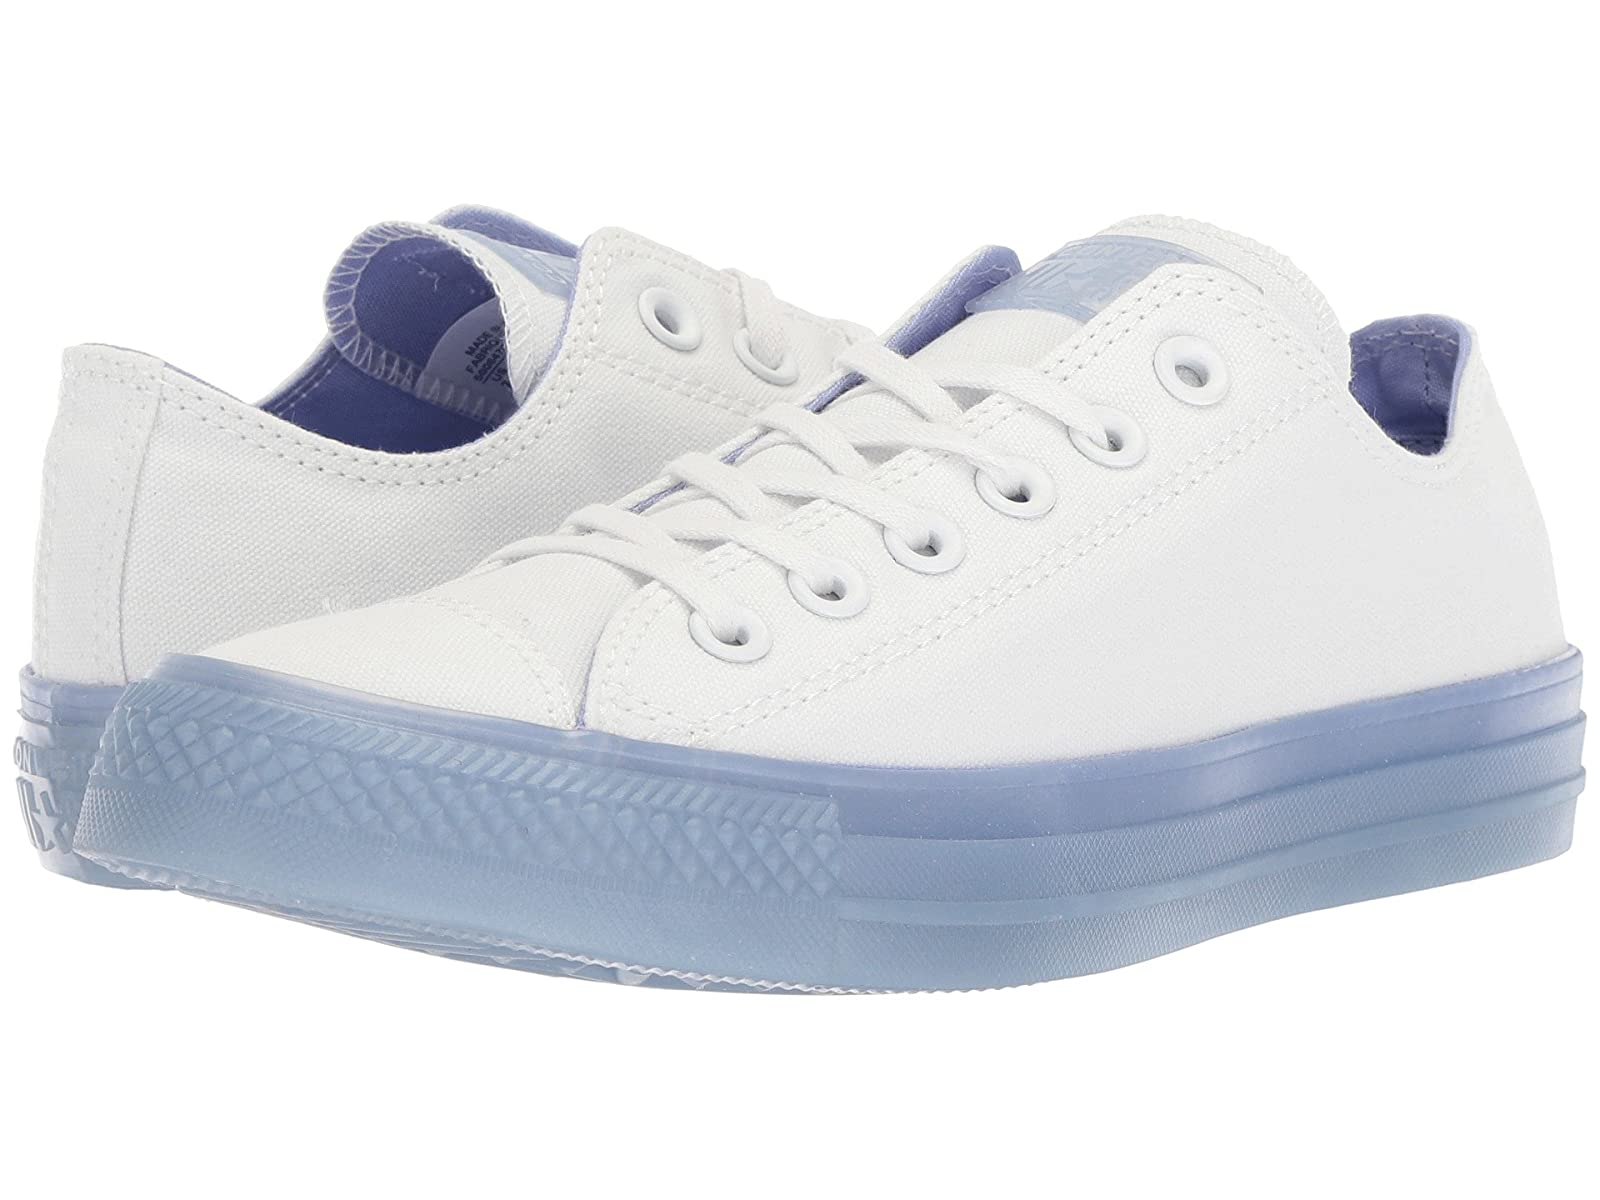 Converse Chuck Taylor® All Star® Ox - JellyCheap and distinctive eye-catching shoes